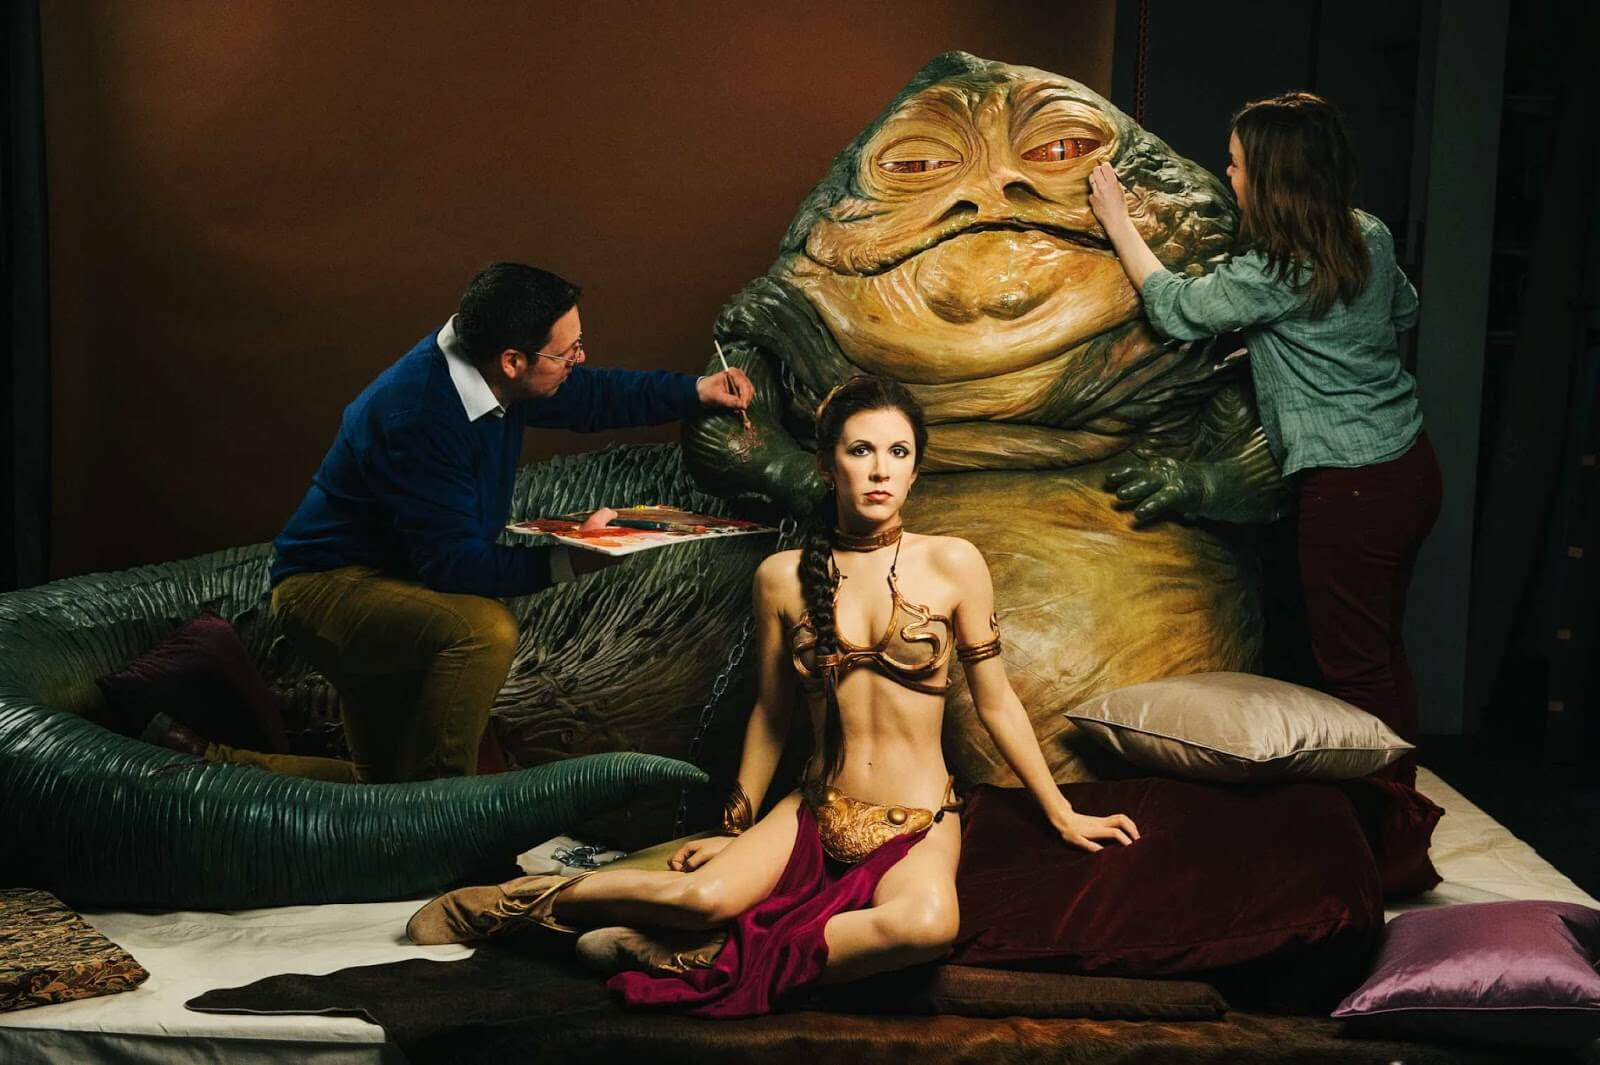 See The $3.9 Million Star Wars Exhibit at Madame Tussauds